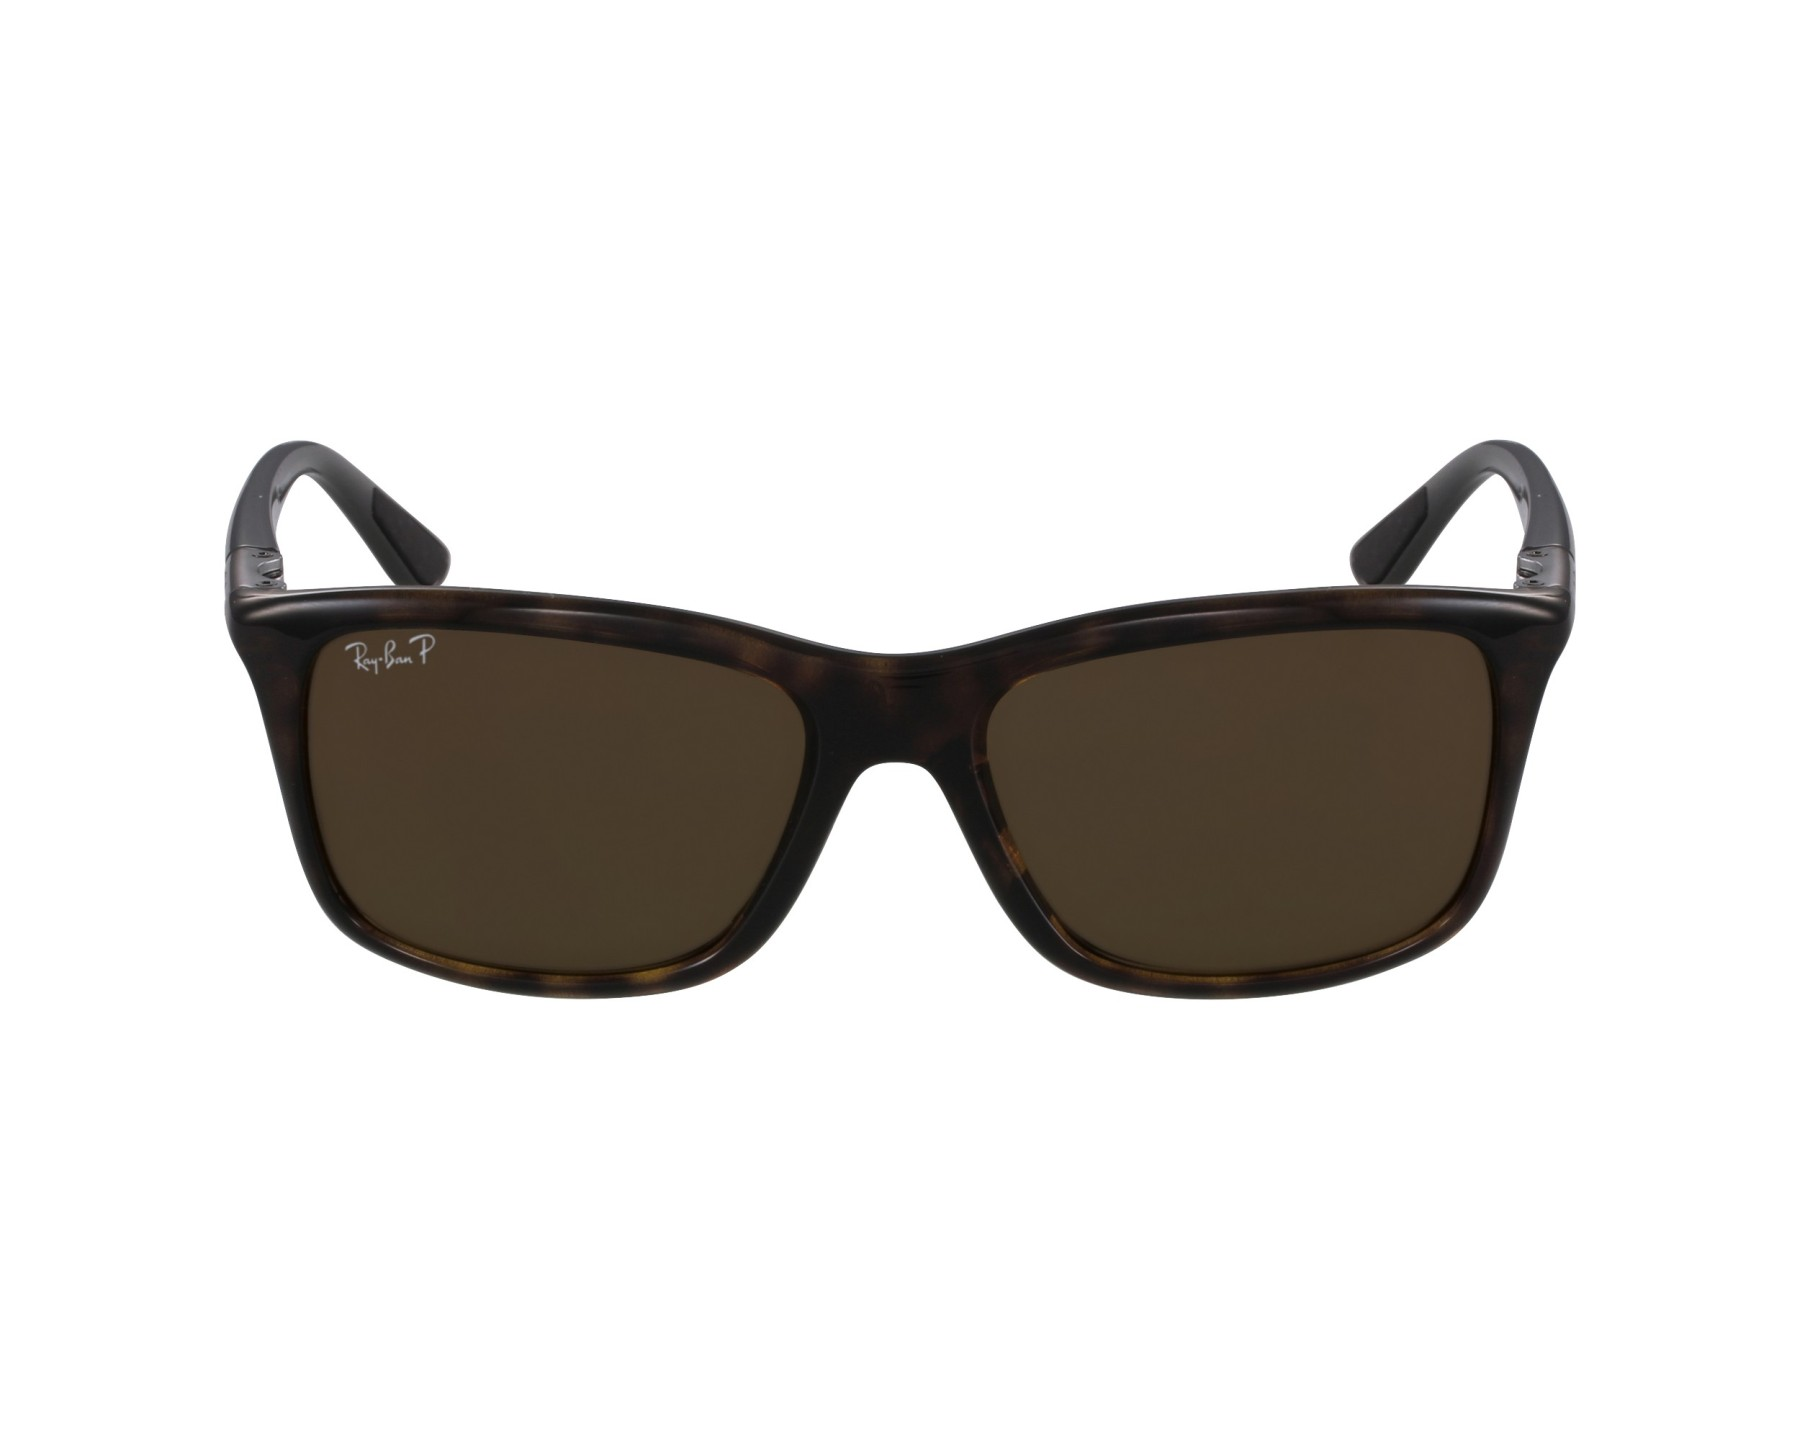 8e8a4e7b59 Polarized. Sunglasses Ray-Ban RB-8352 6221 83 - Havana Grey profile view